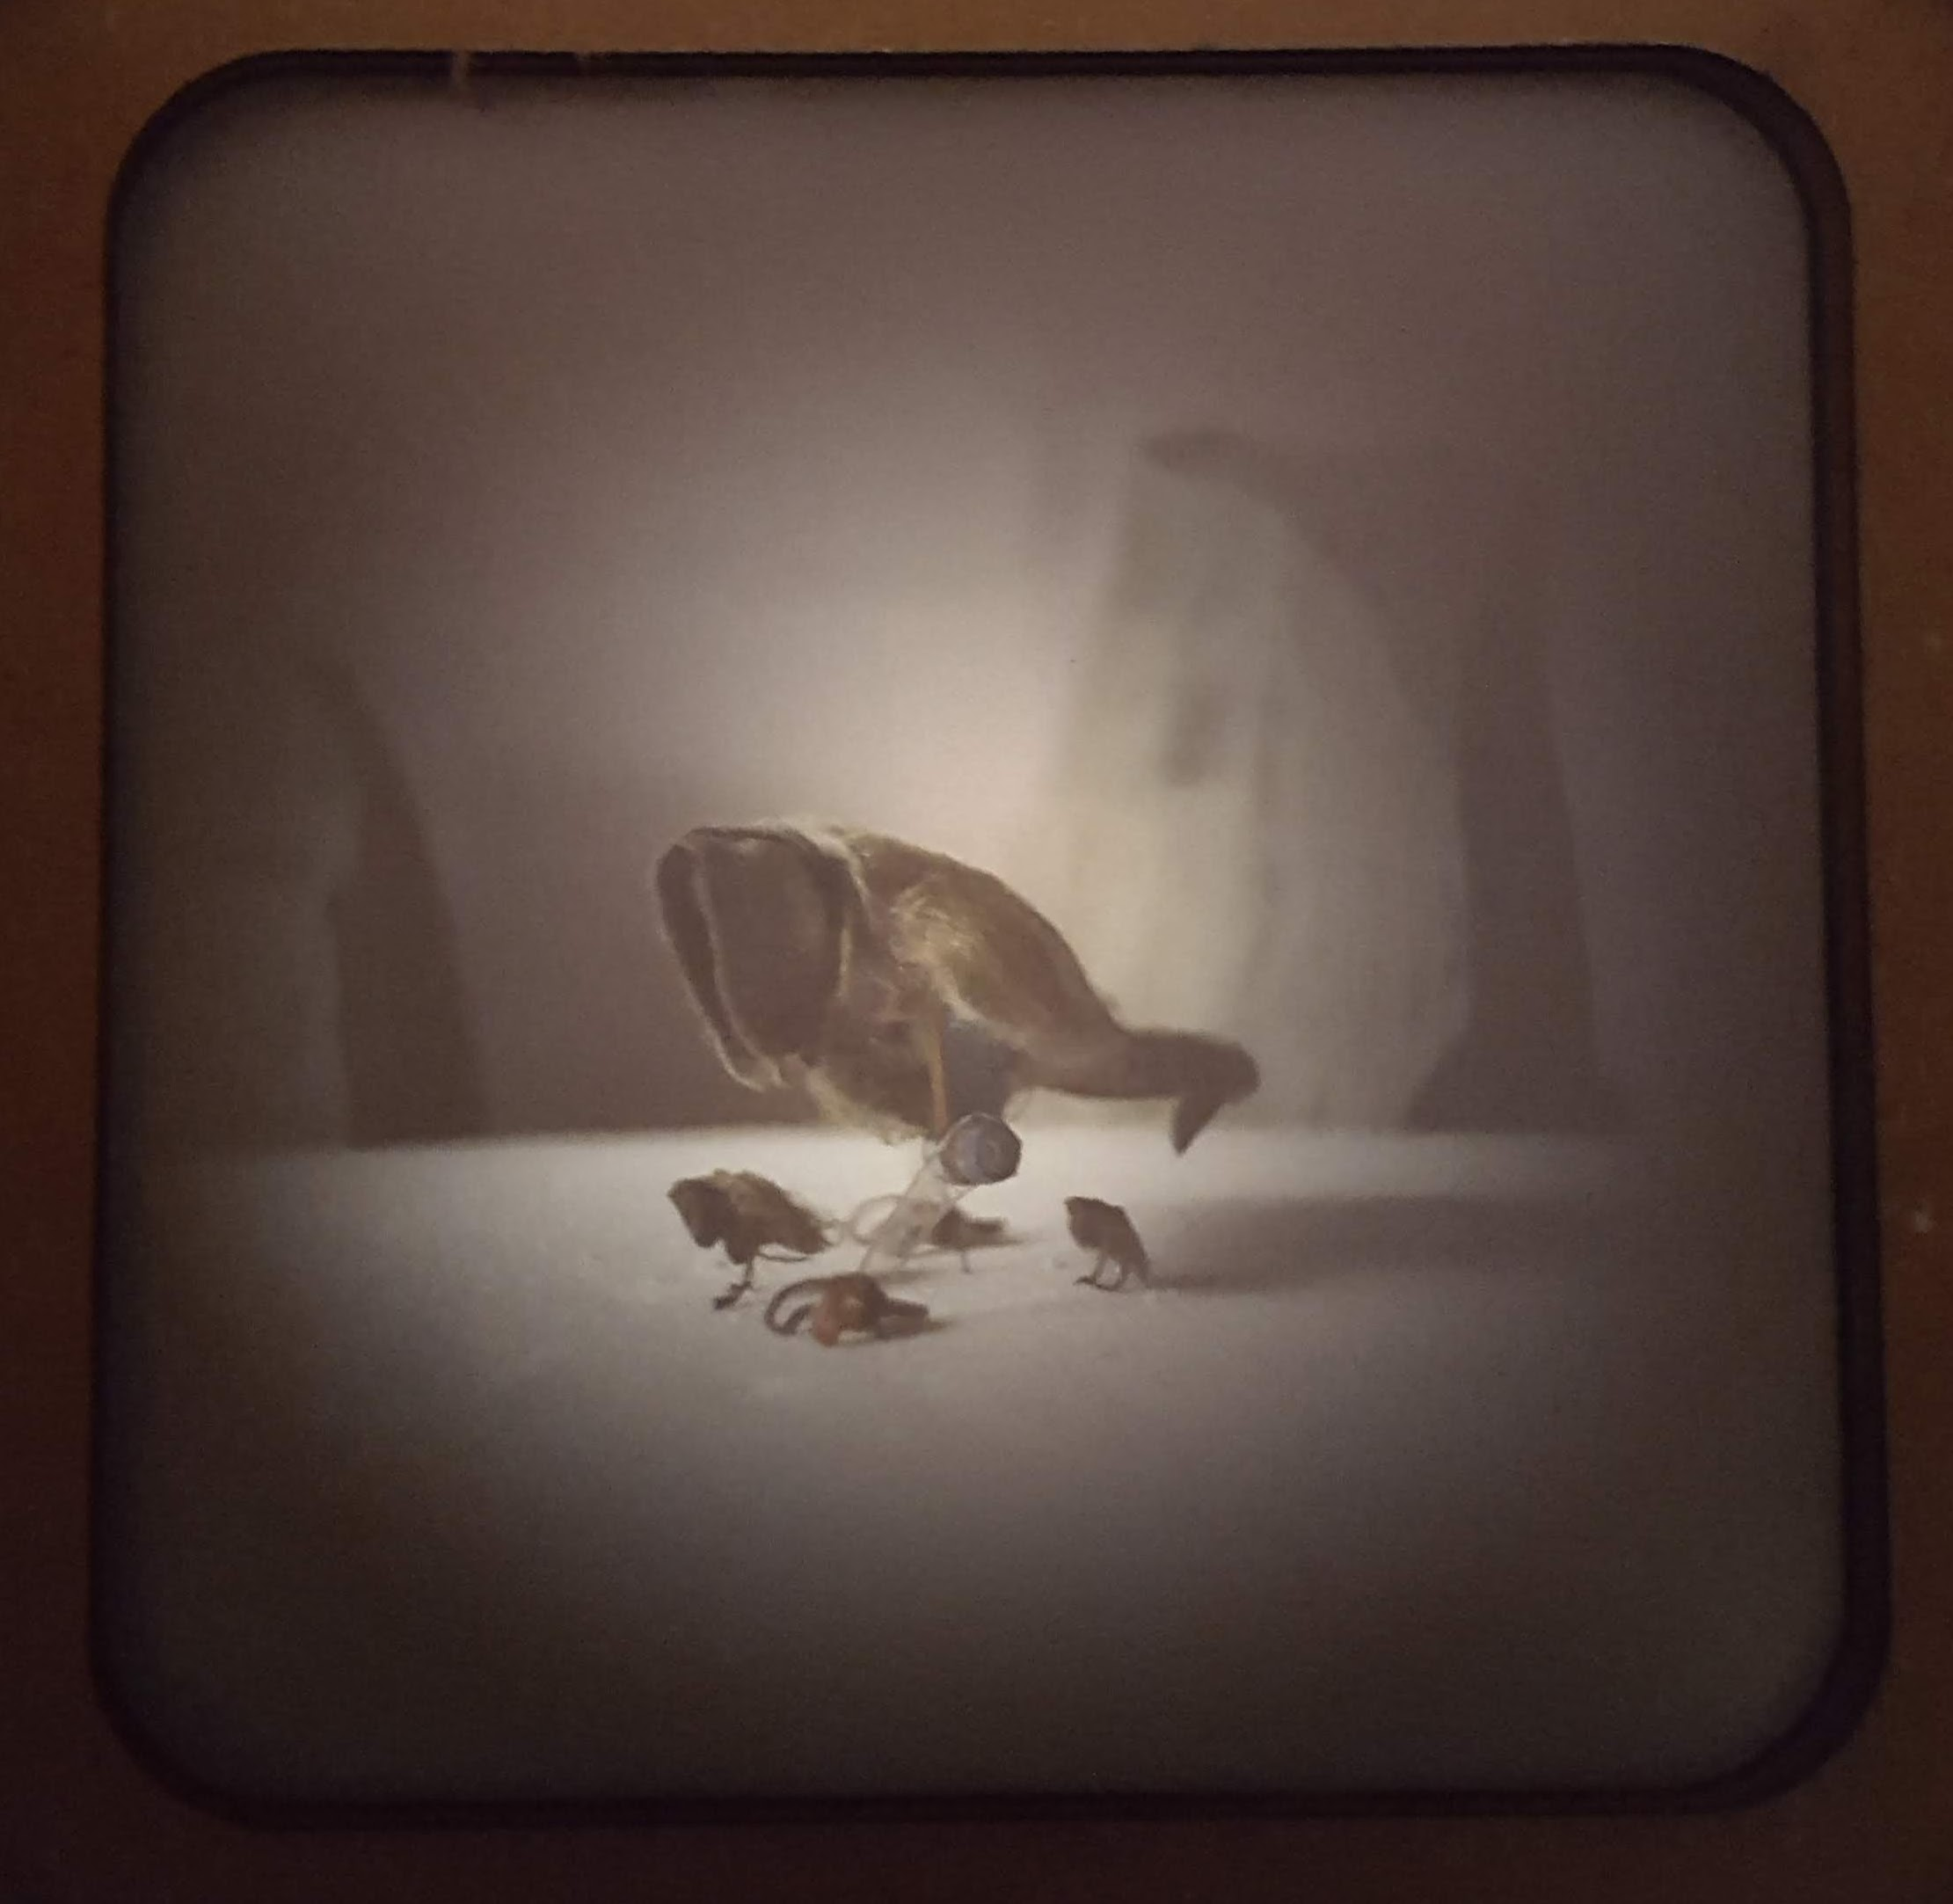 Still from obscura stop-motion